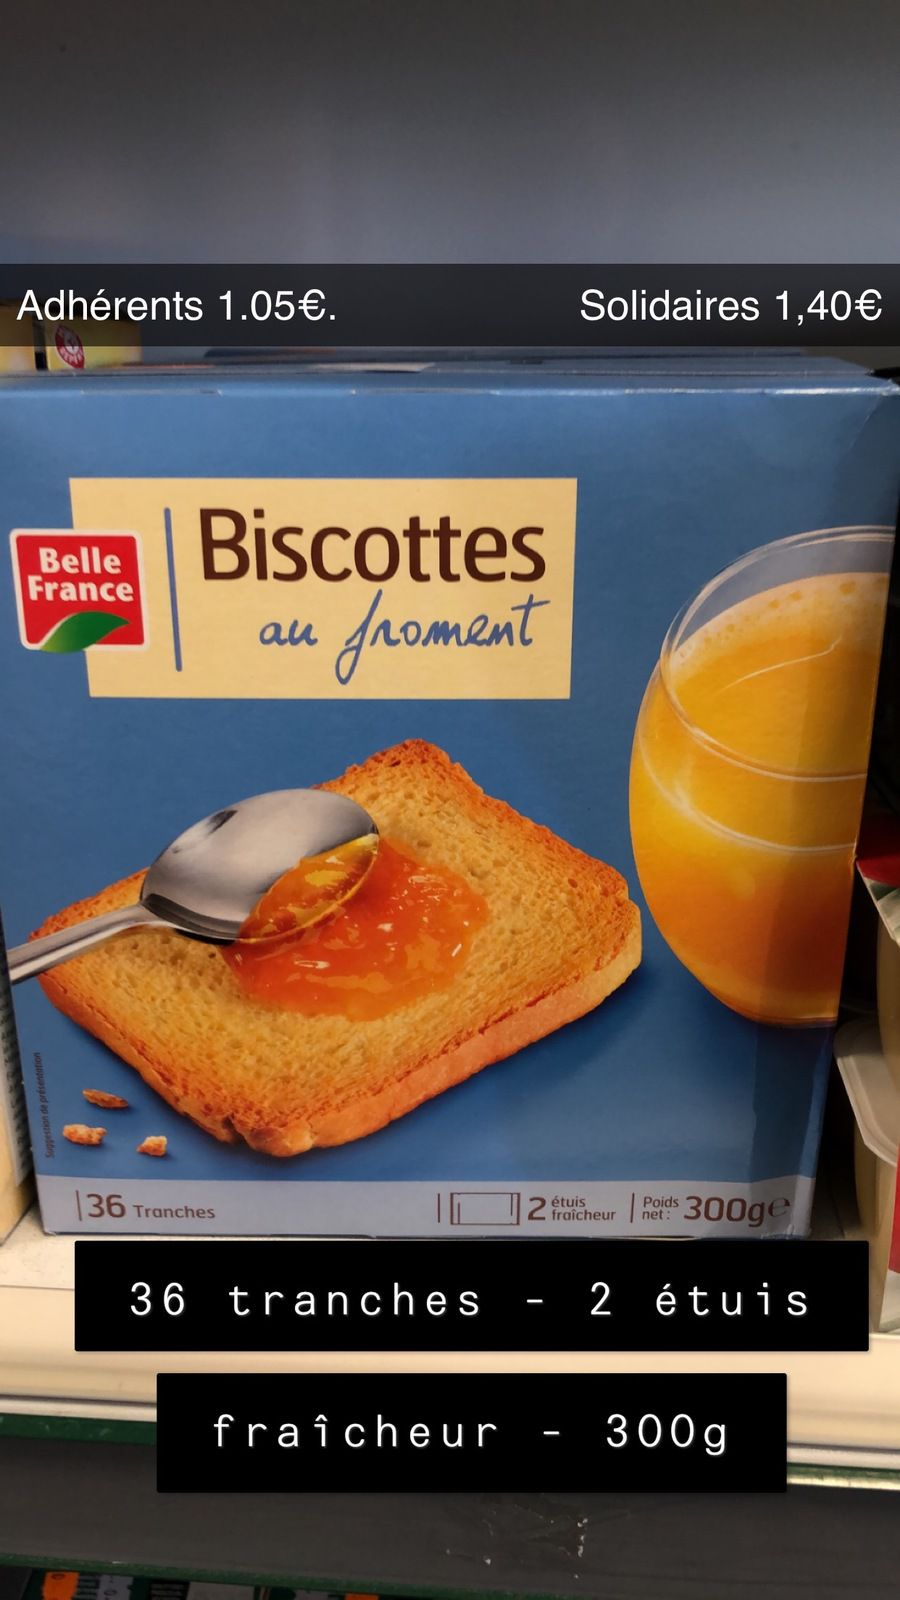 Biscottes au froment - 300g - 36 tranches